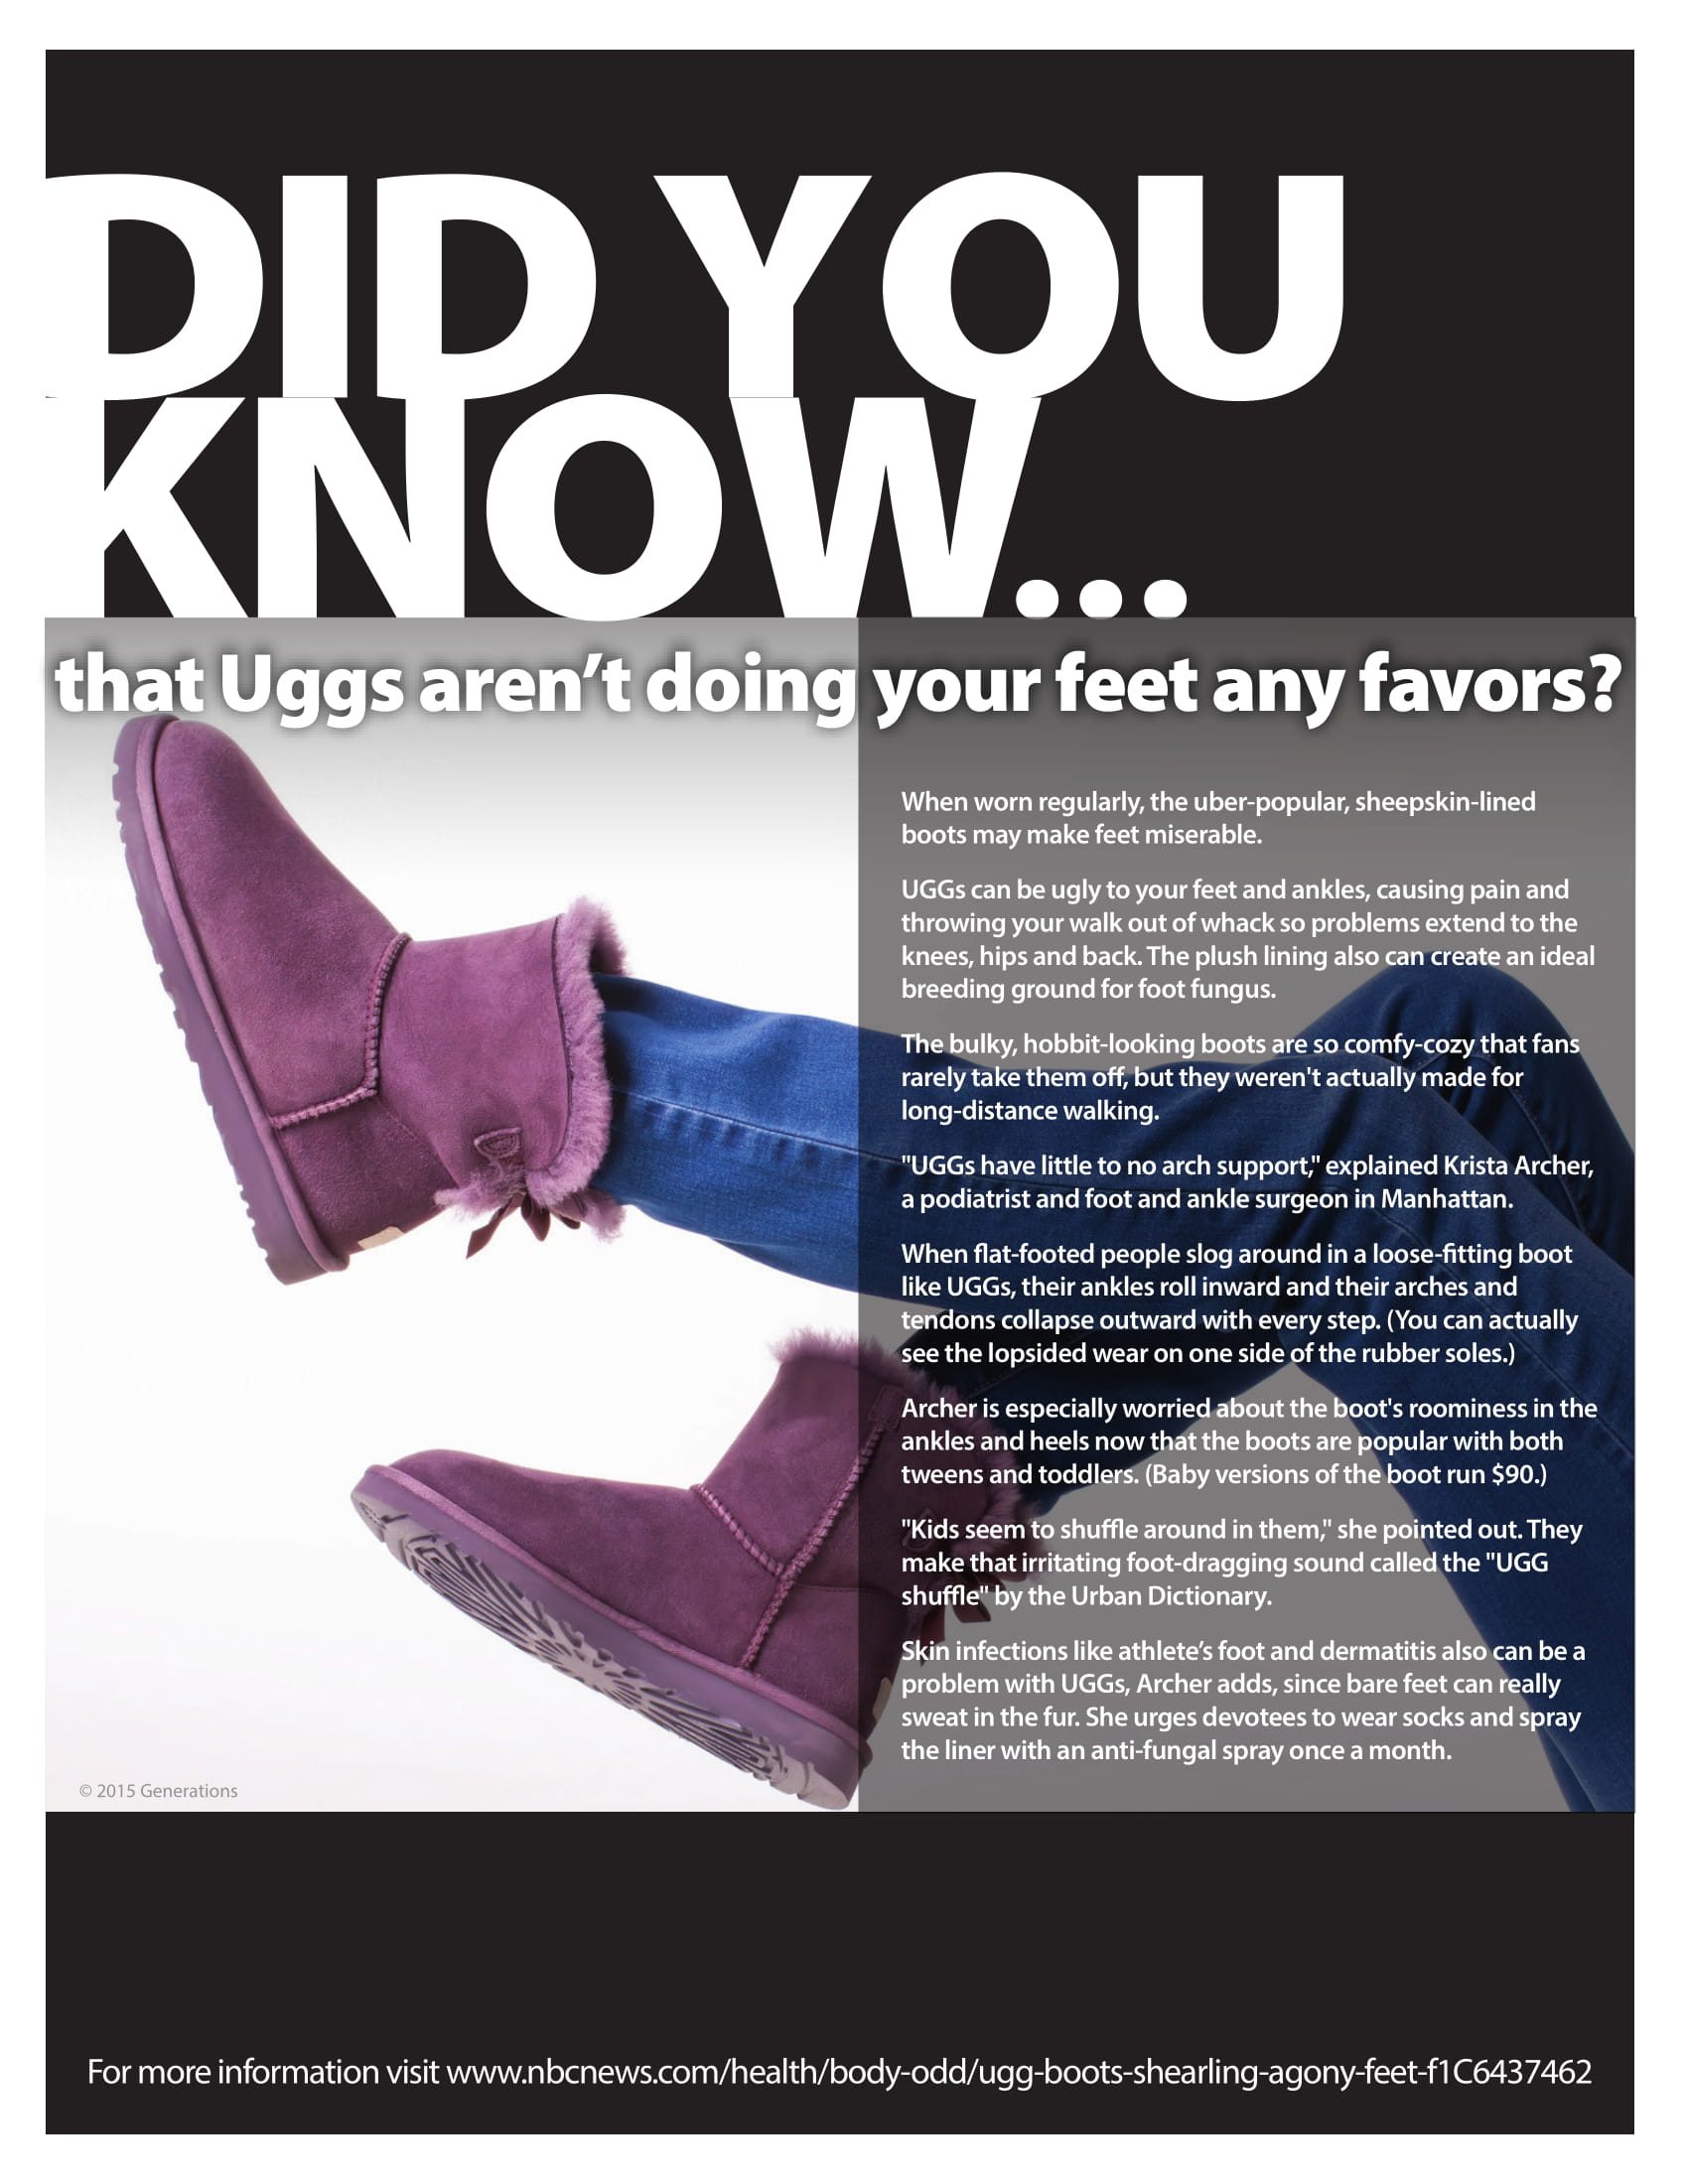 DID YOU KNOW? Ugg's arent doing your feet any favours?